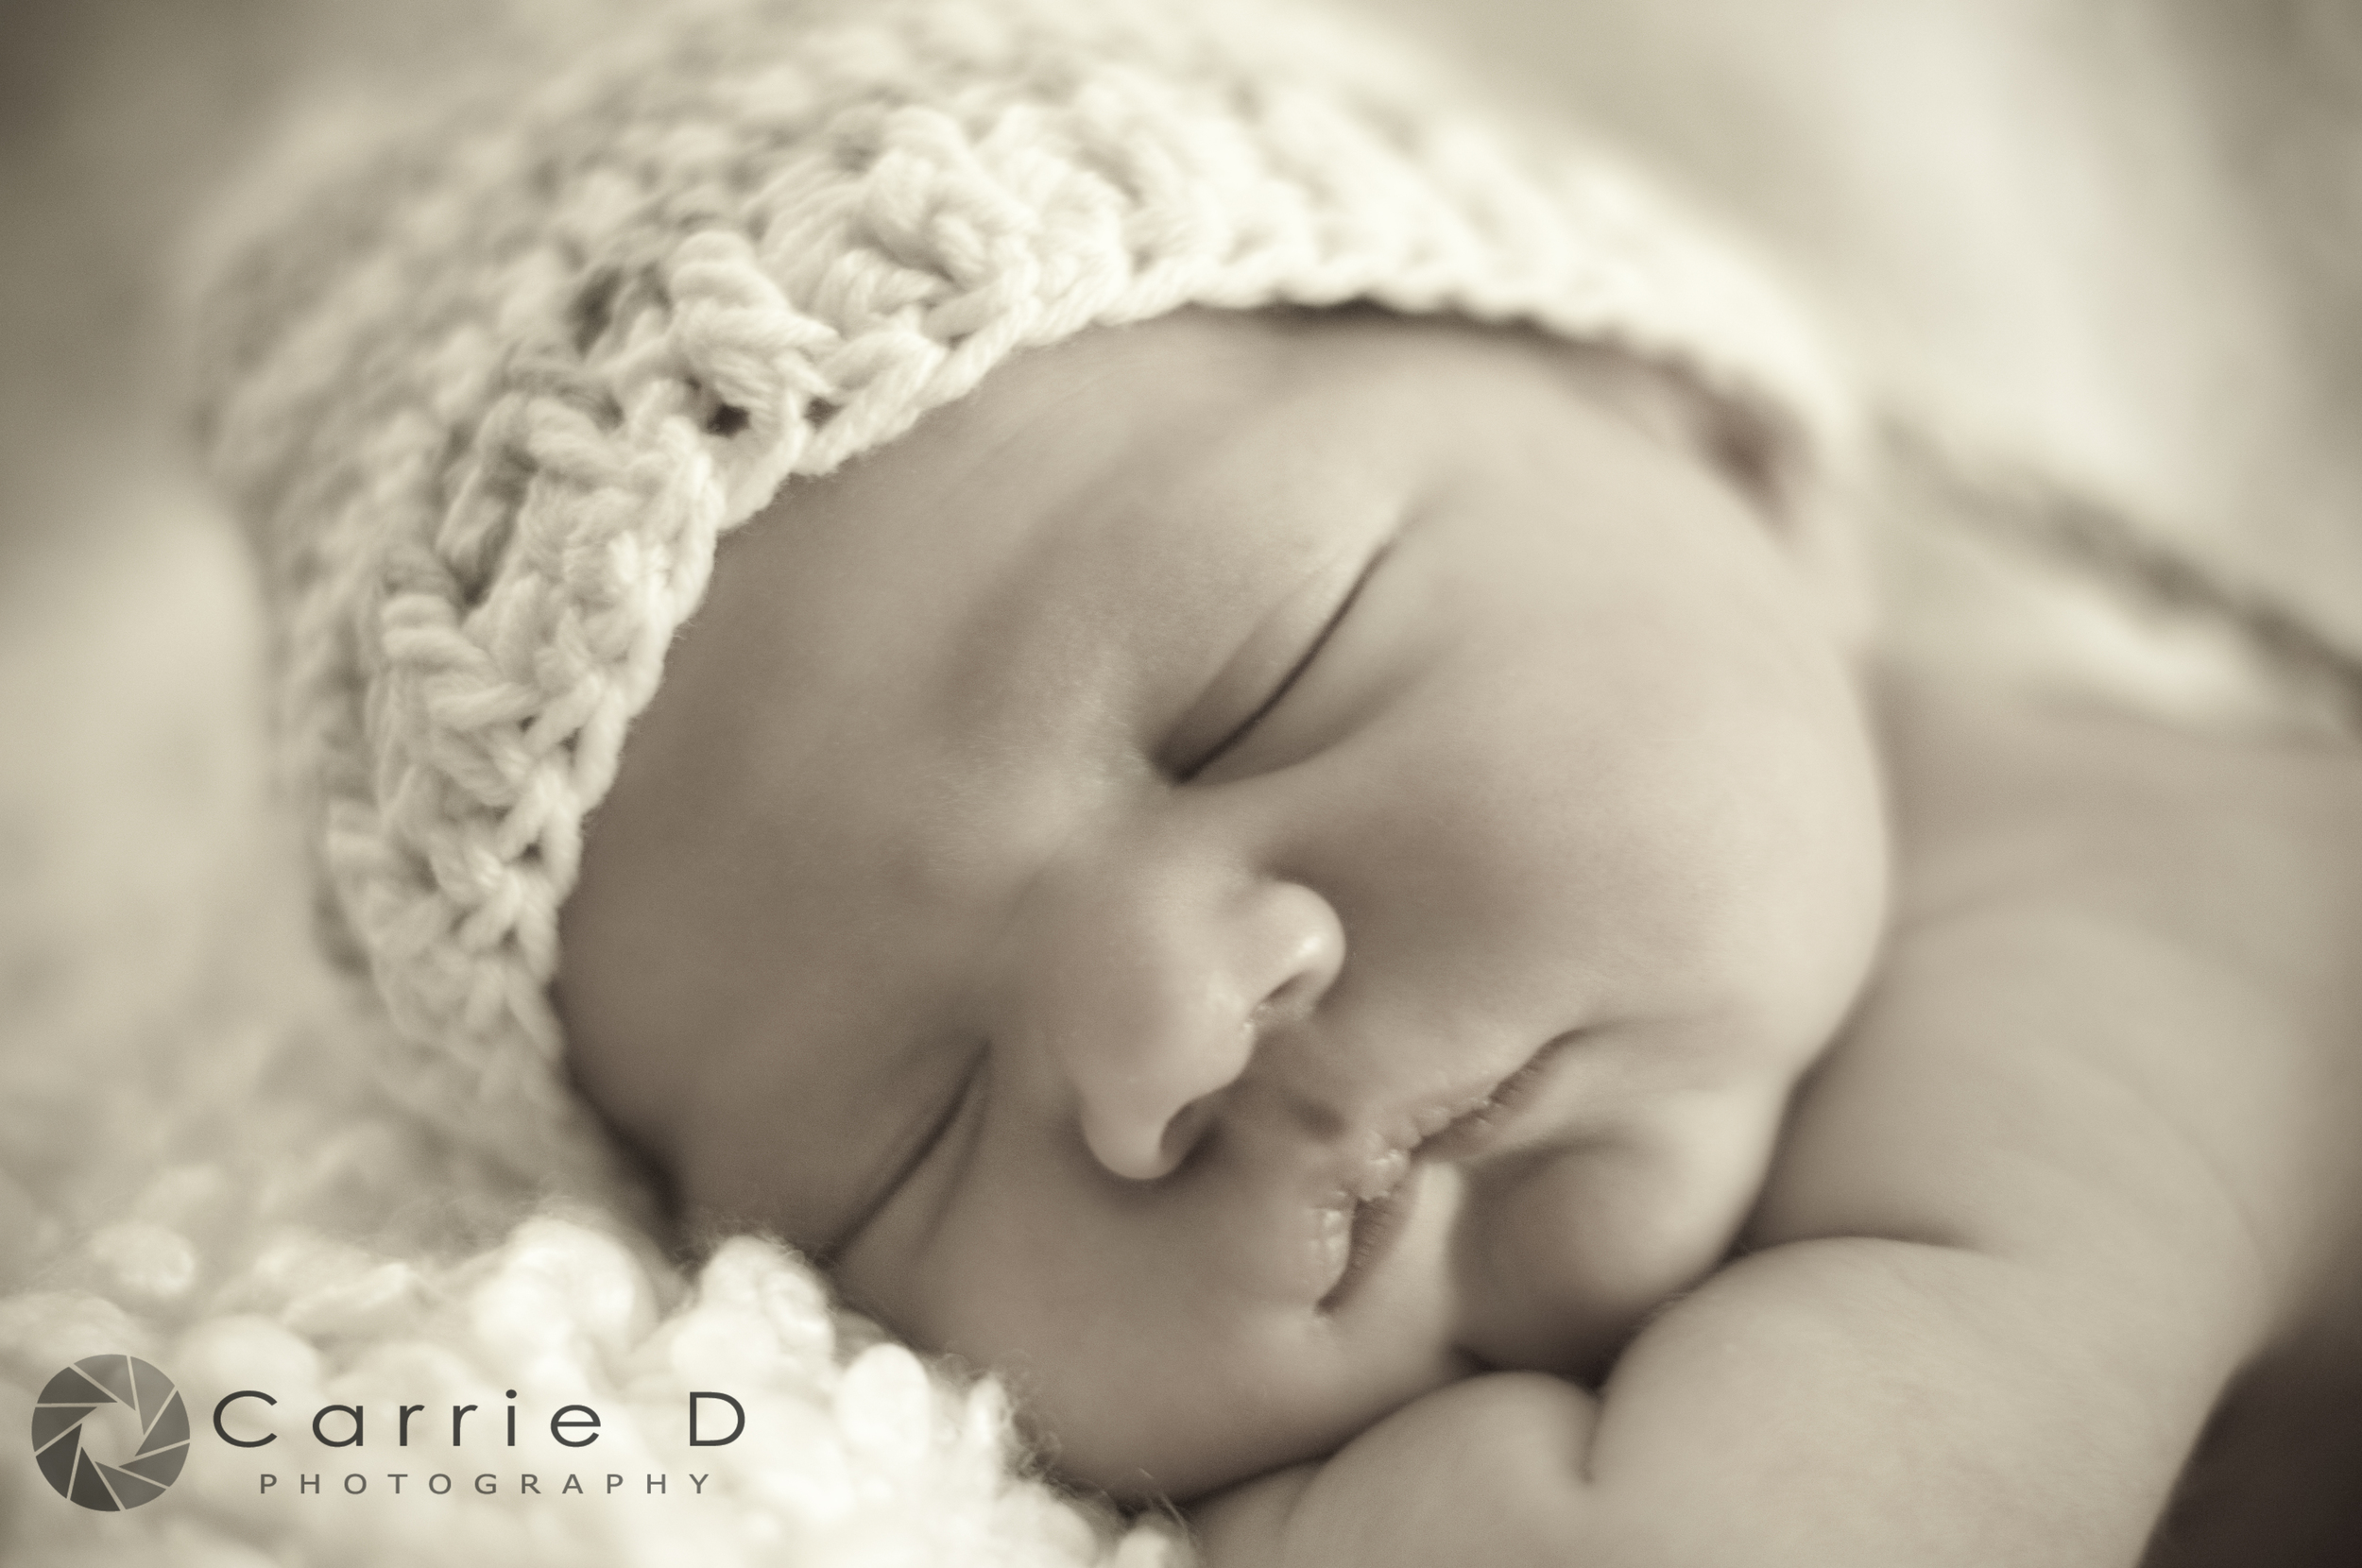 Baltimore Newborn Photographer - Natural Light Newborn Photography - Newborn Easter Photo - Natural Light Family Photograph